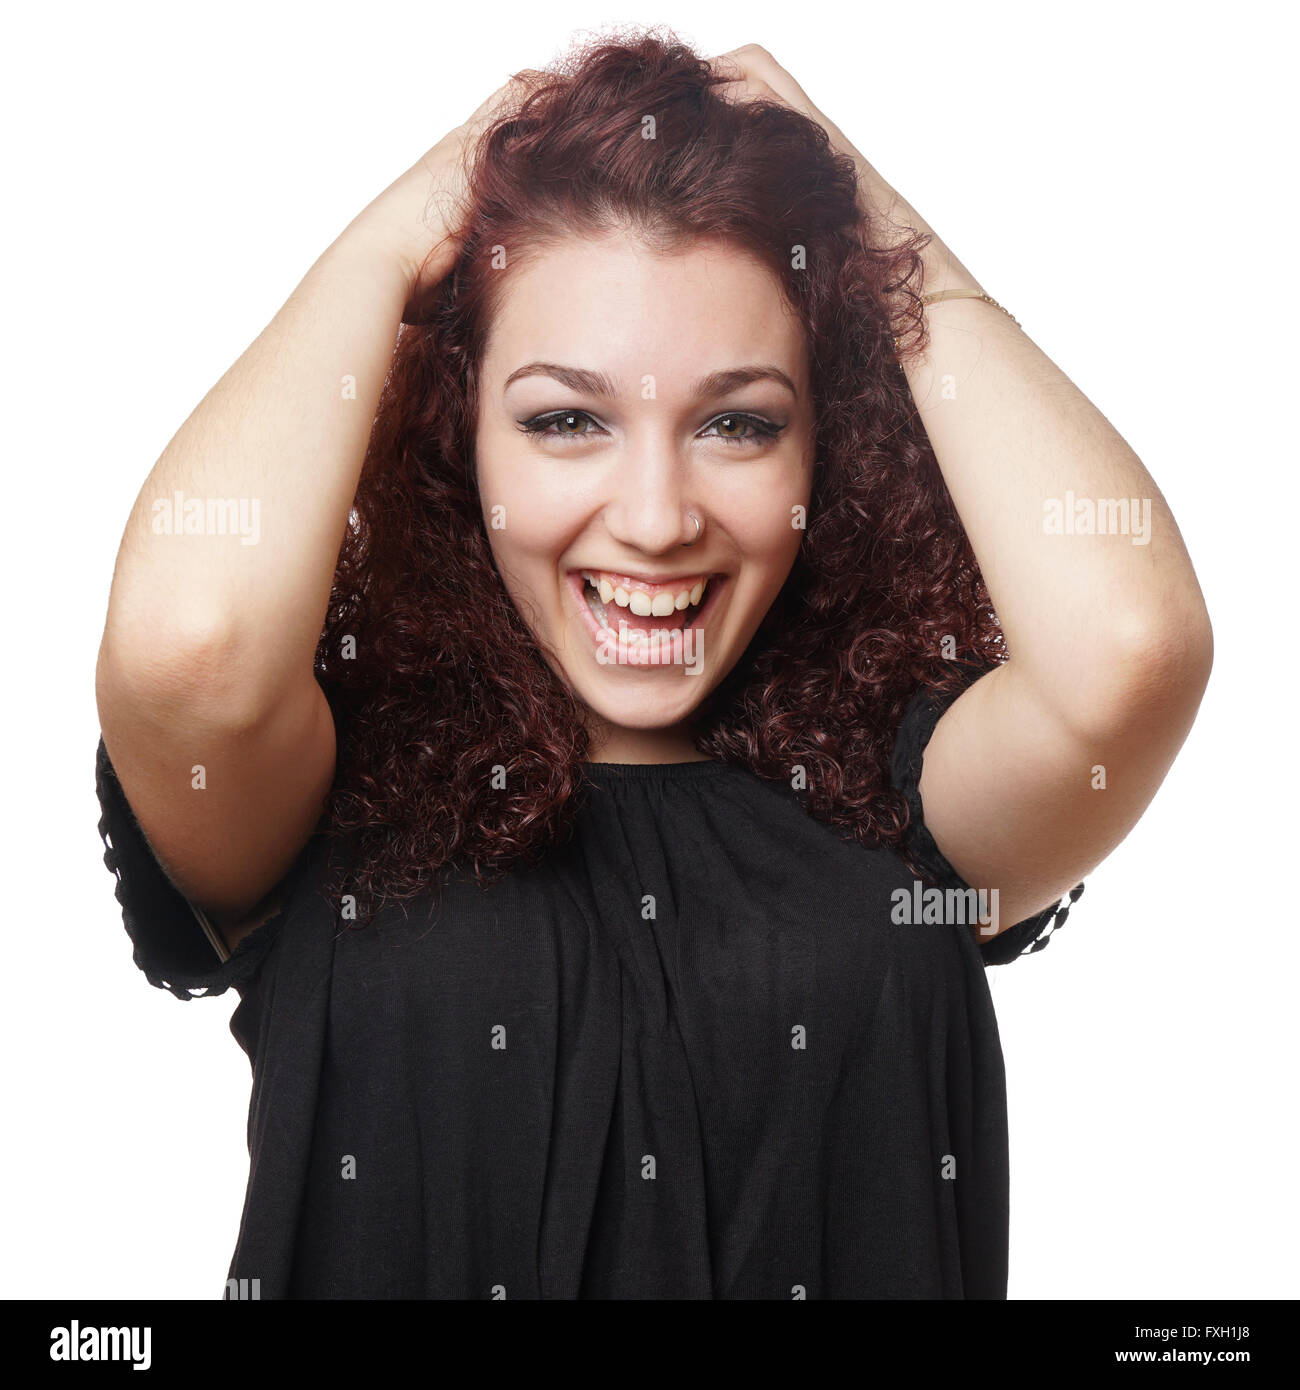 excited girl beaming with delight - Stock Image